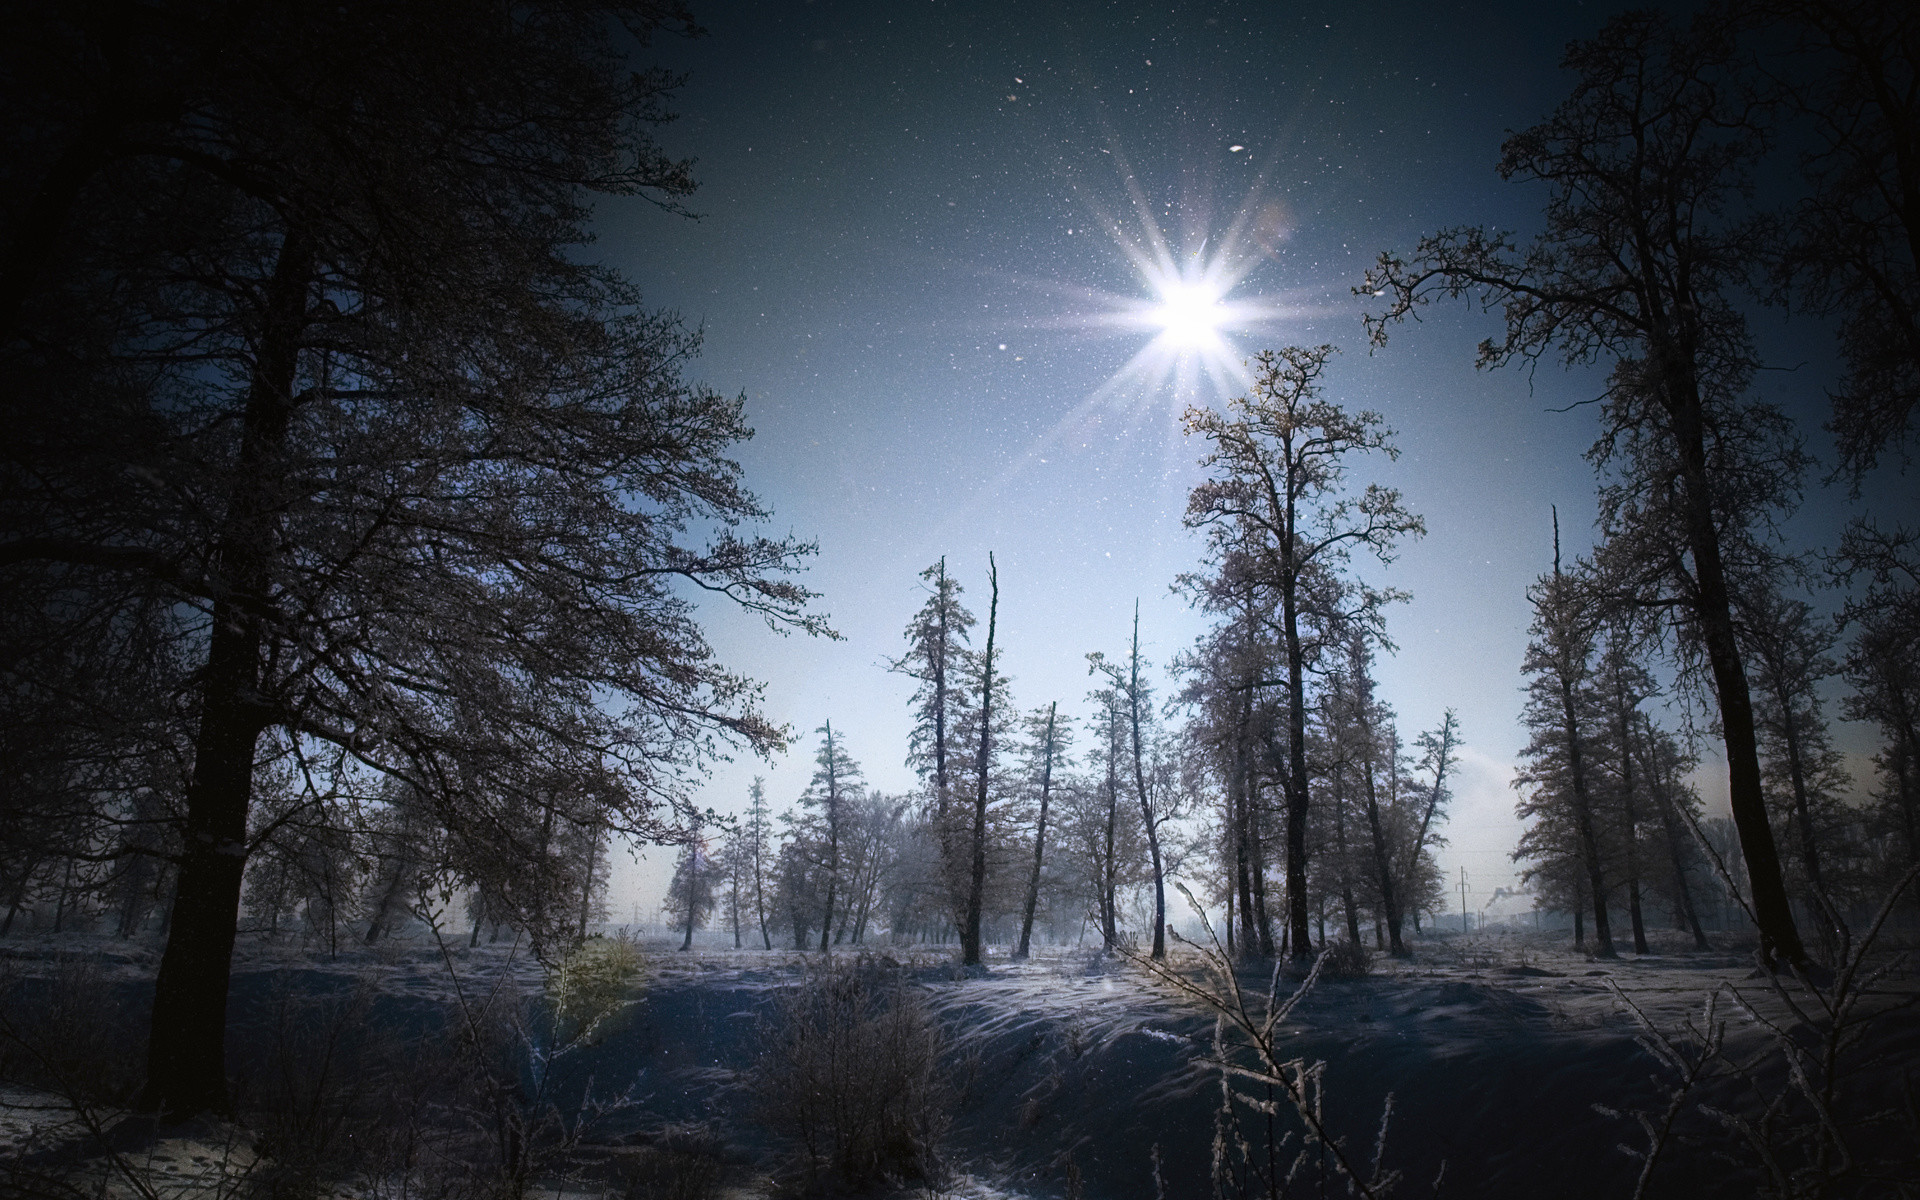 Flakes winter snow night moon light landscapes trees forest wallpaper |  | 41476 | WallpaperUP